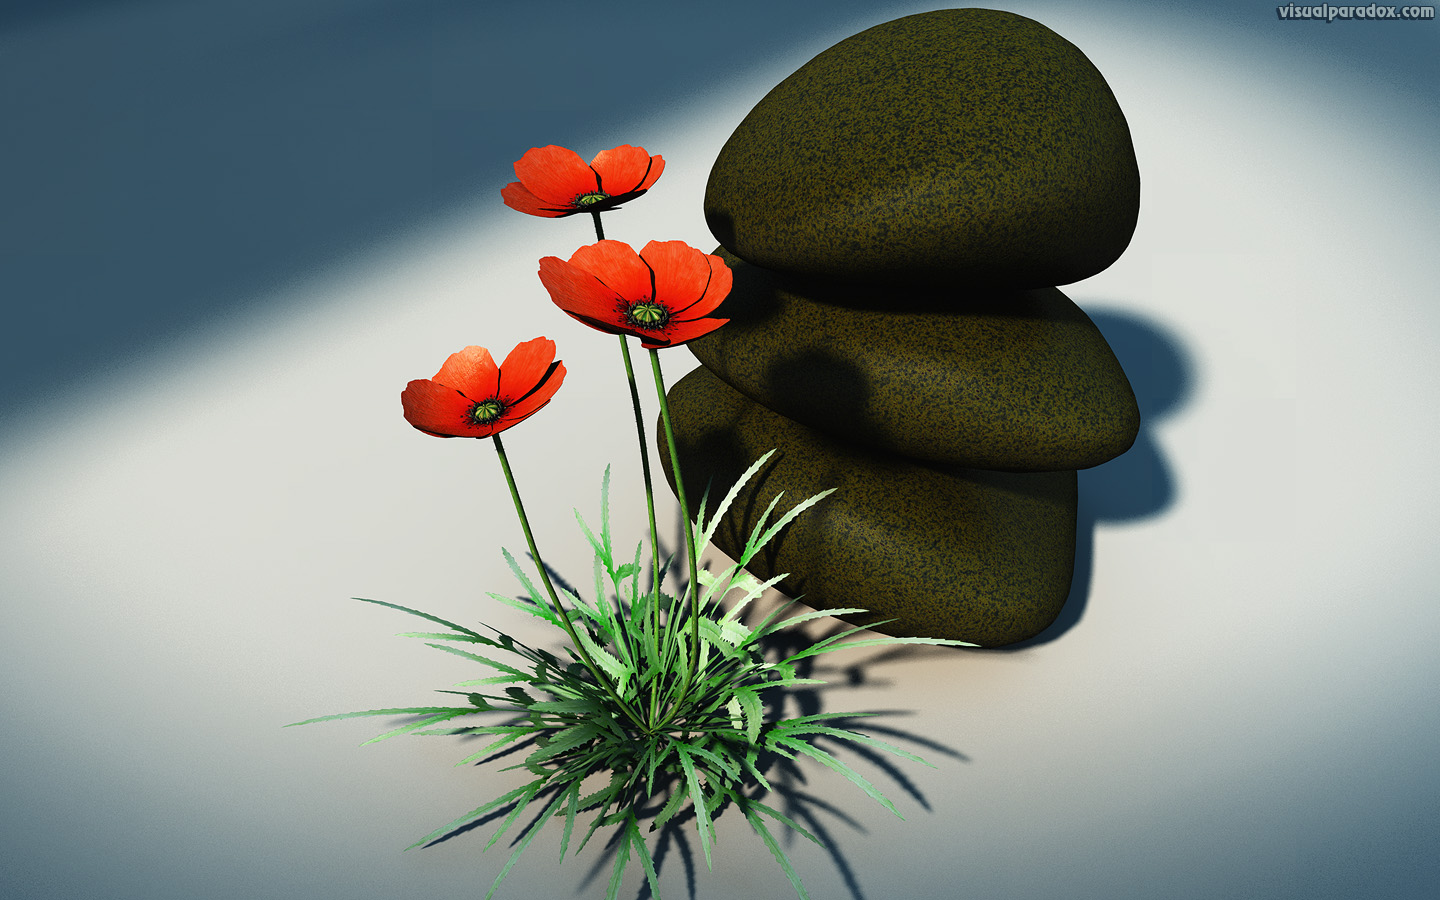 poppy, papaver, orientale, rhoeas, bloom, blossom, decorative, design, rocks, flora, floral, flower, nature, petal, plant, still life, poppy, red, rural, wild, wildflower, 3d, wallpaper